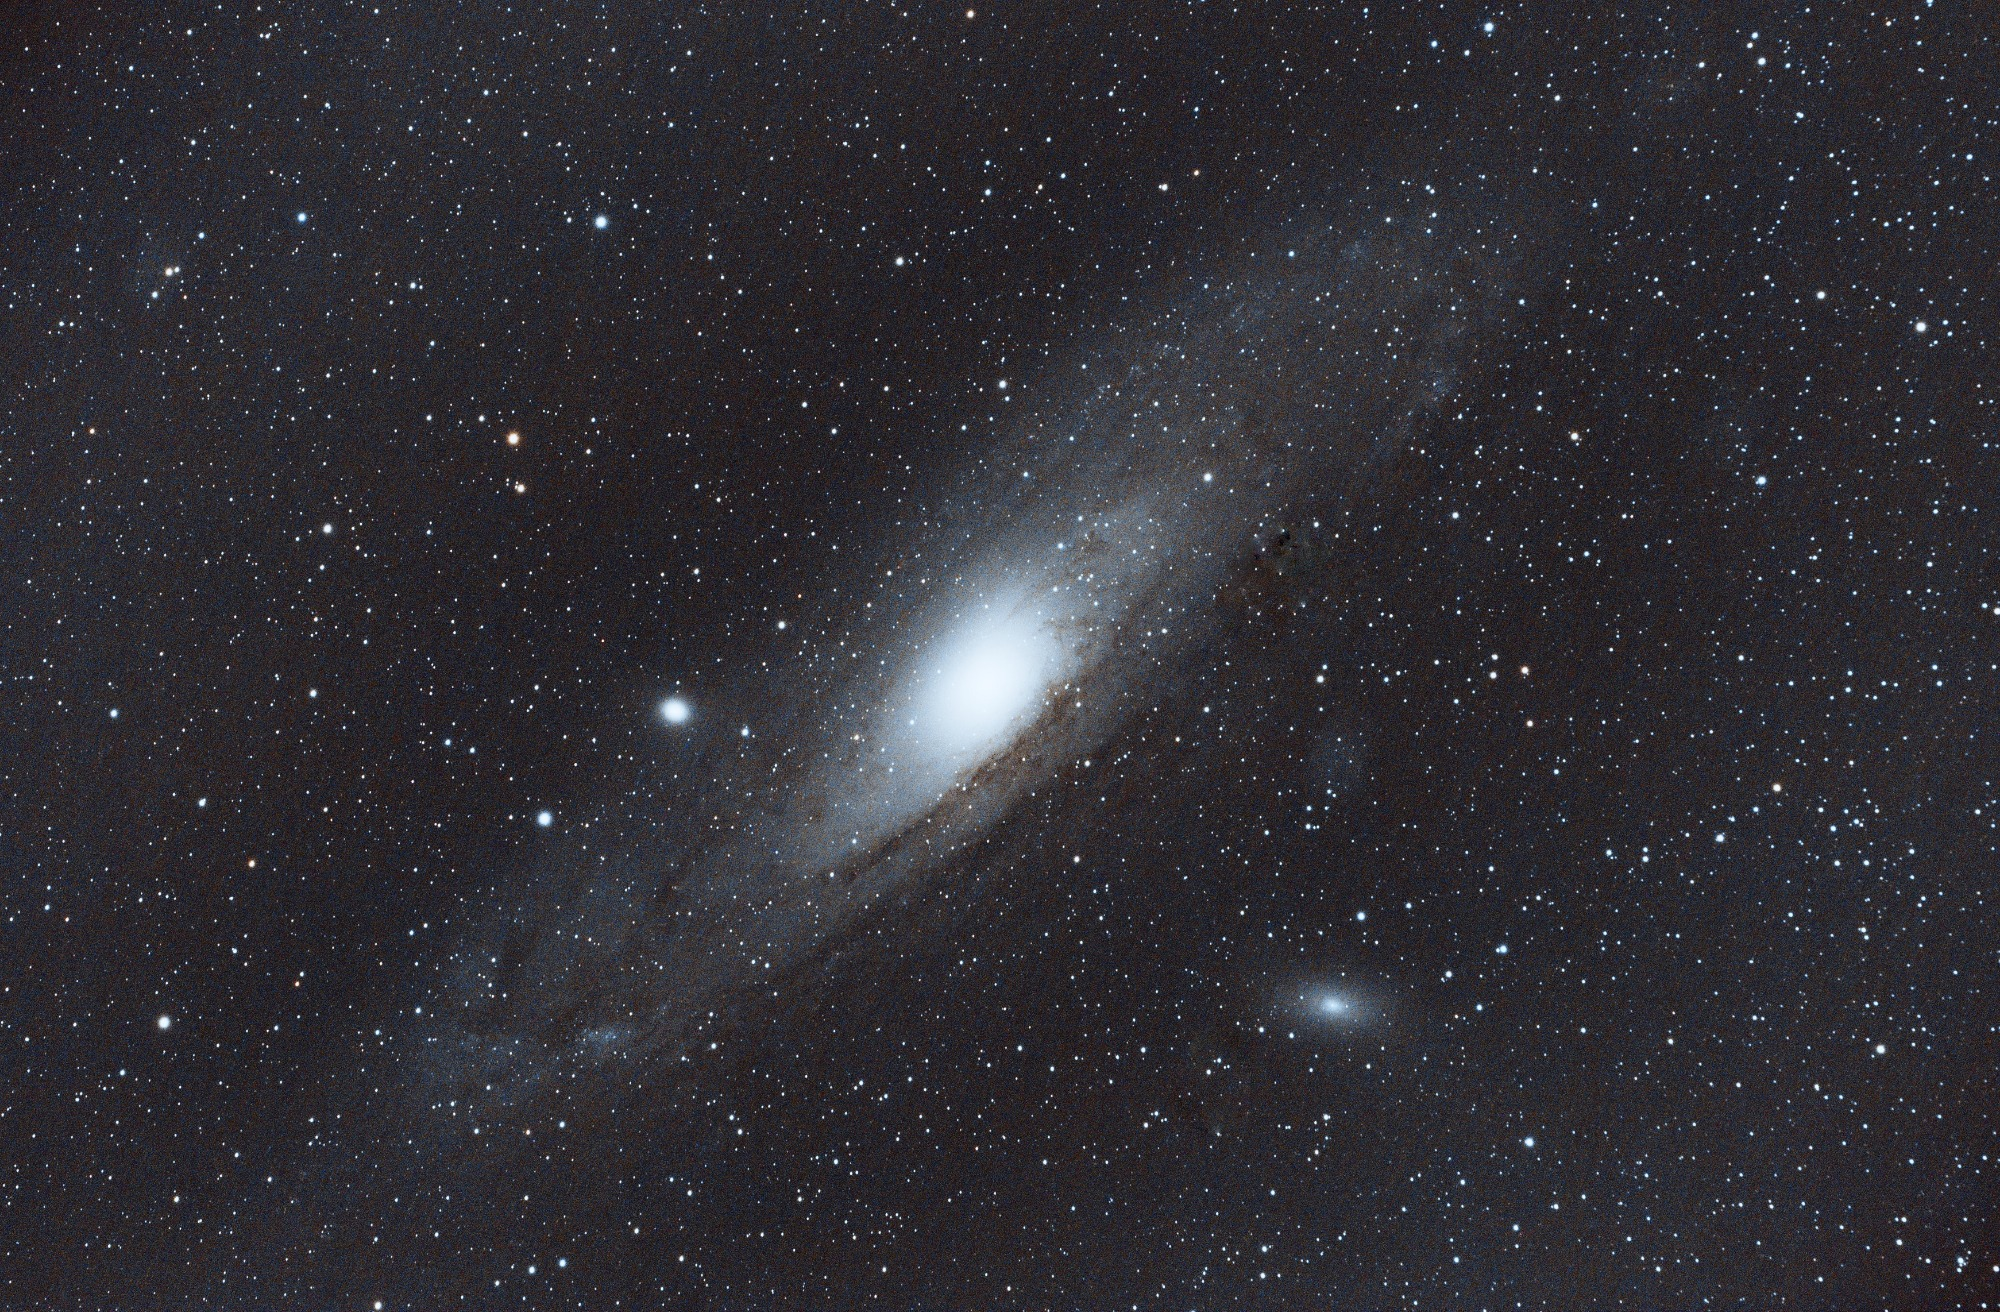 M31_Andromeda_light_FILTER_OSC_BINNING_1_integration_ABE_ABE-healed-2.jpg